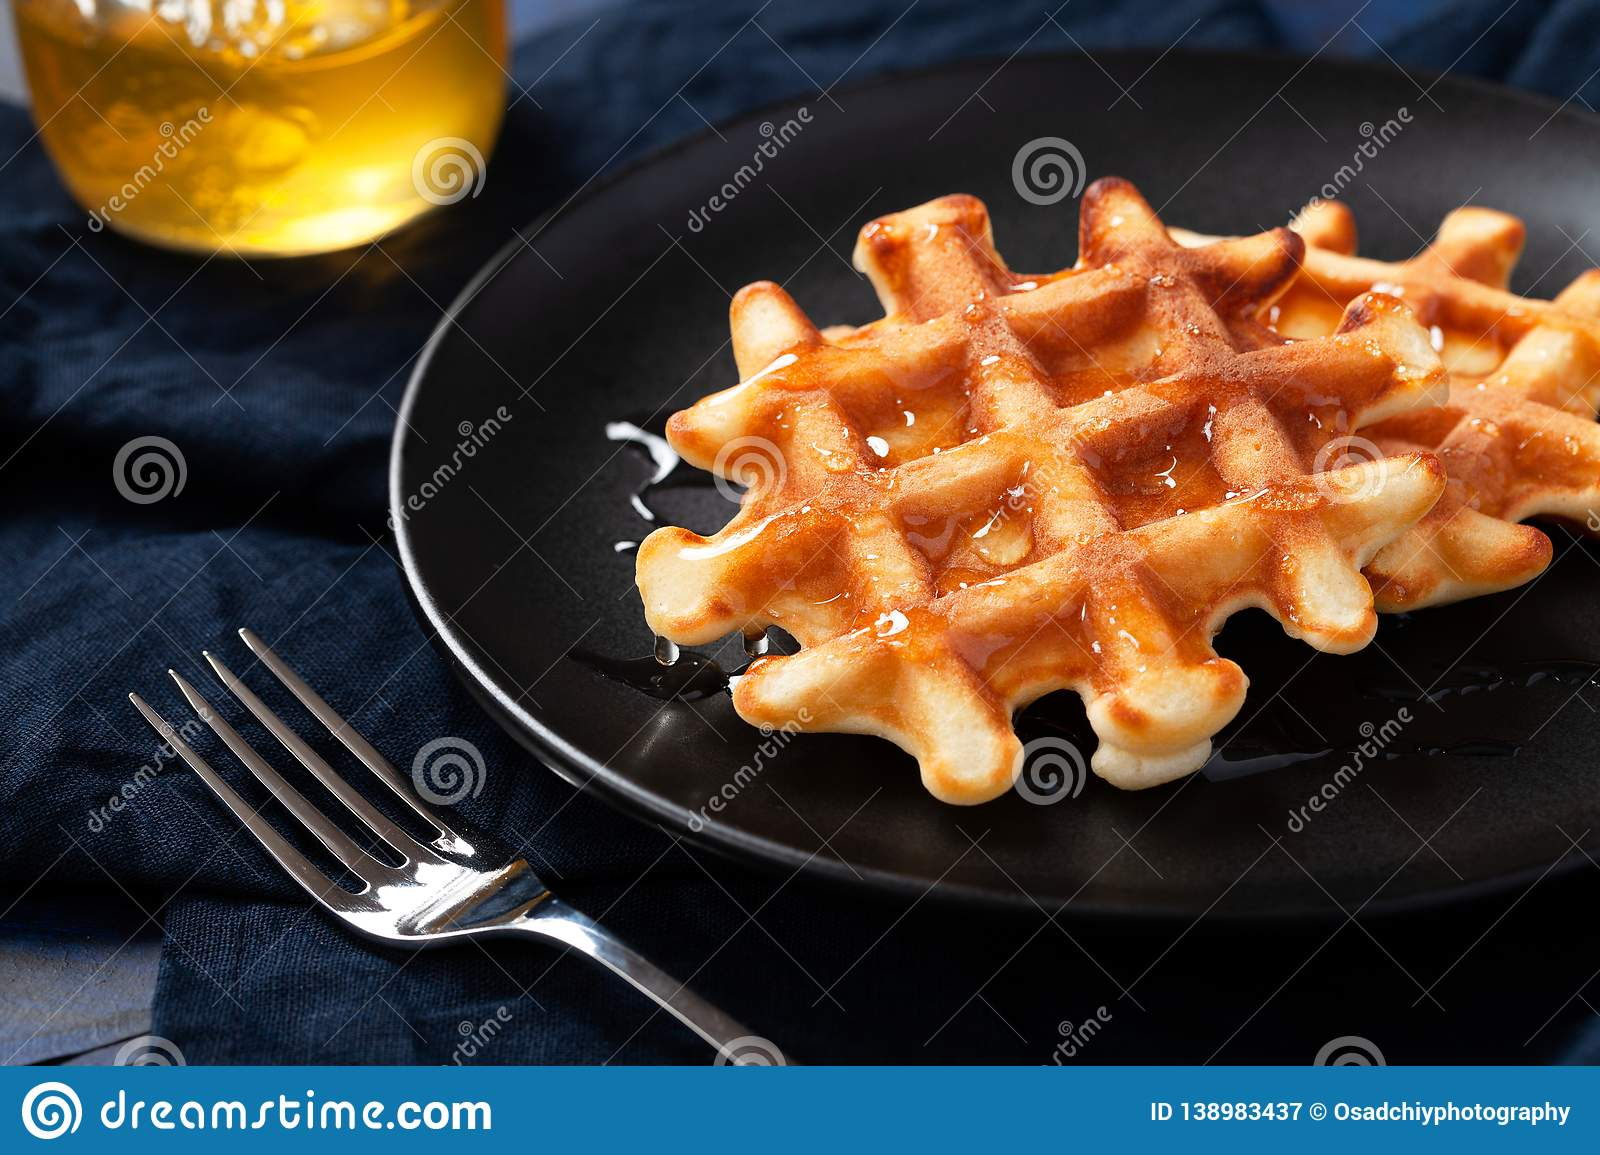 Freshly prepared belgian waffles with honey or maple syrup